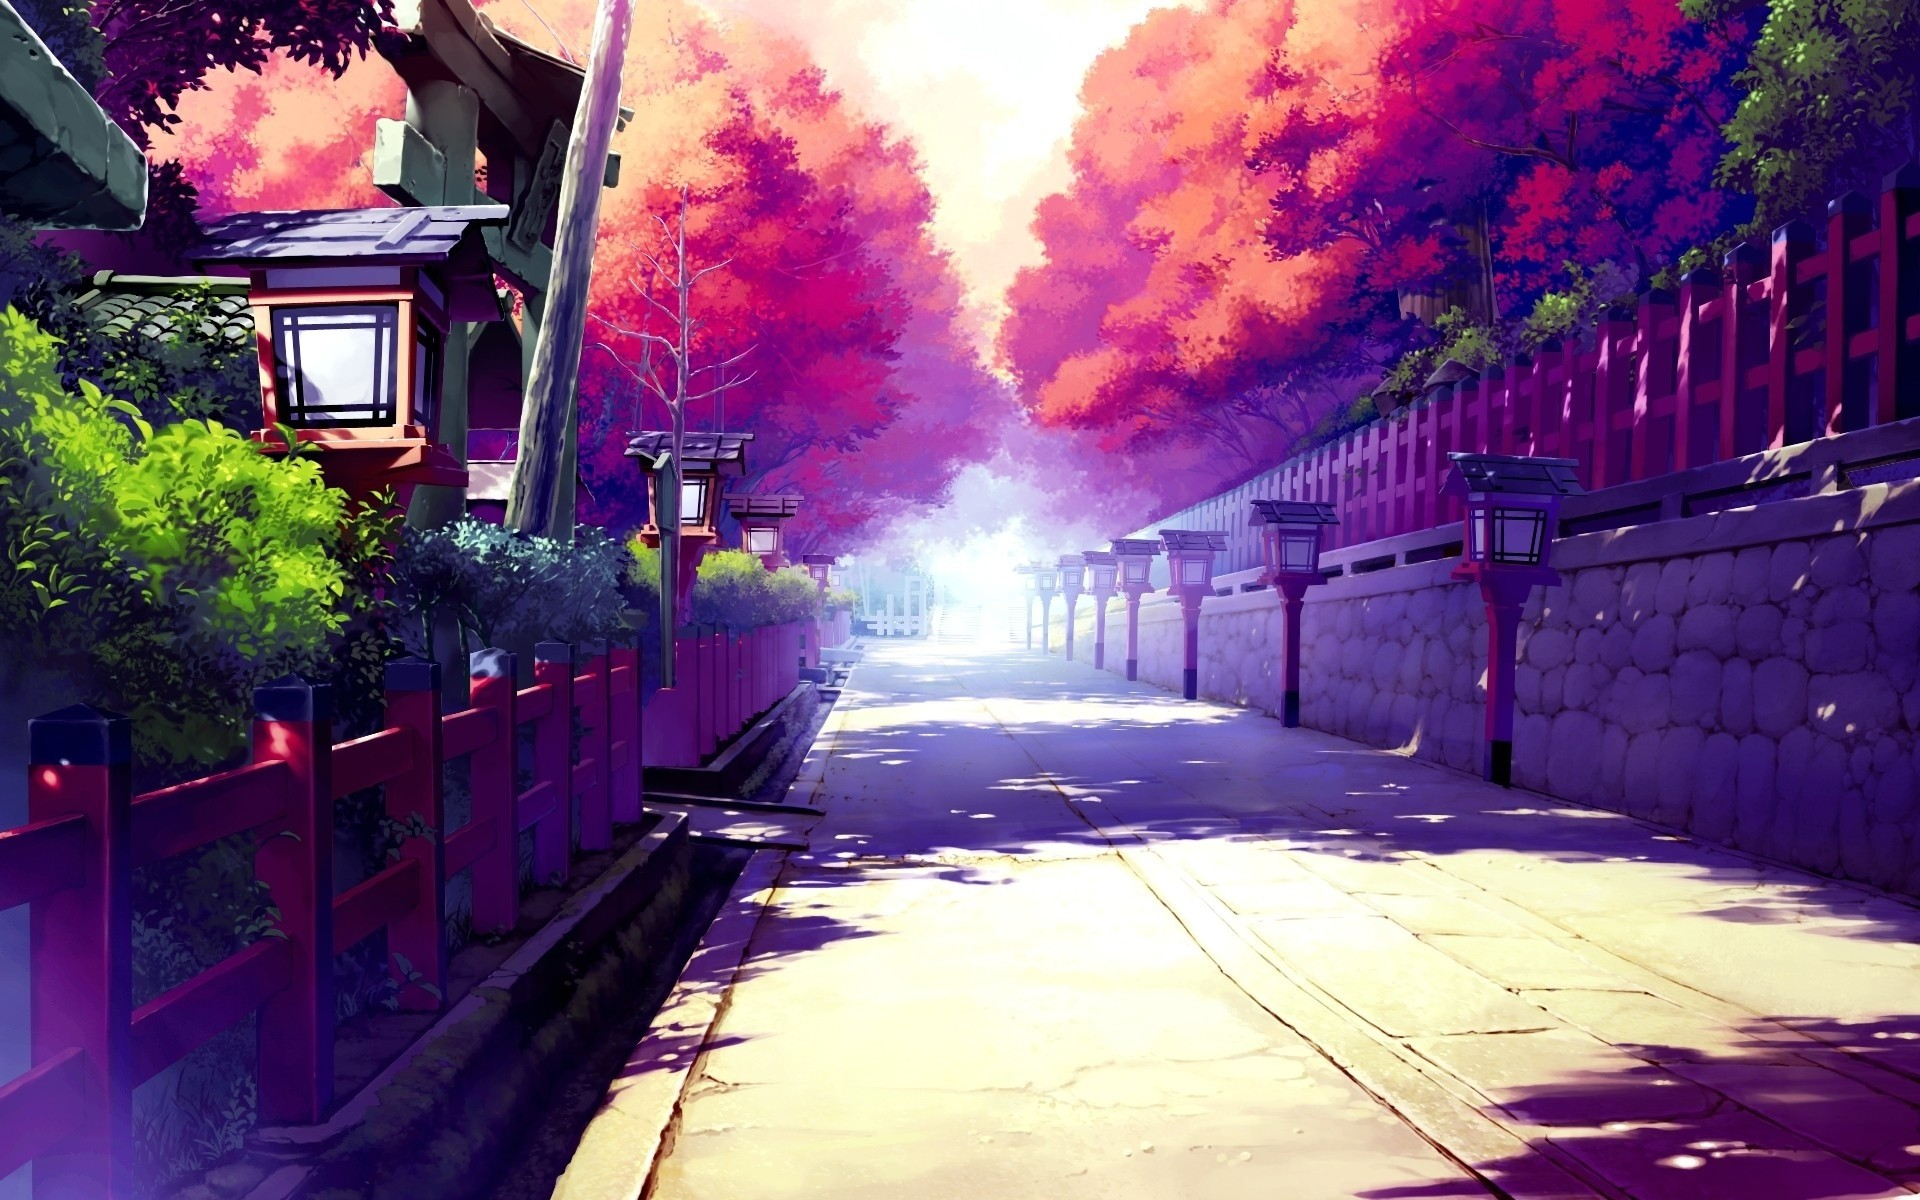 Res: 1920x1200, Best of Animated Japanese Desktop Wallpaper Free - Japan anime backgrounds